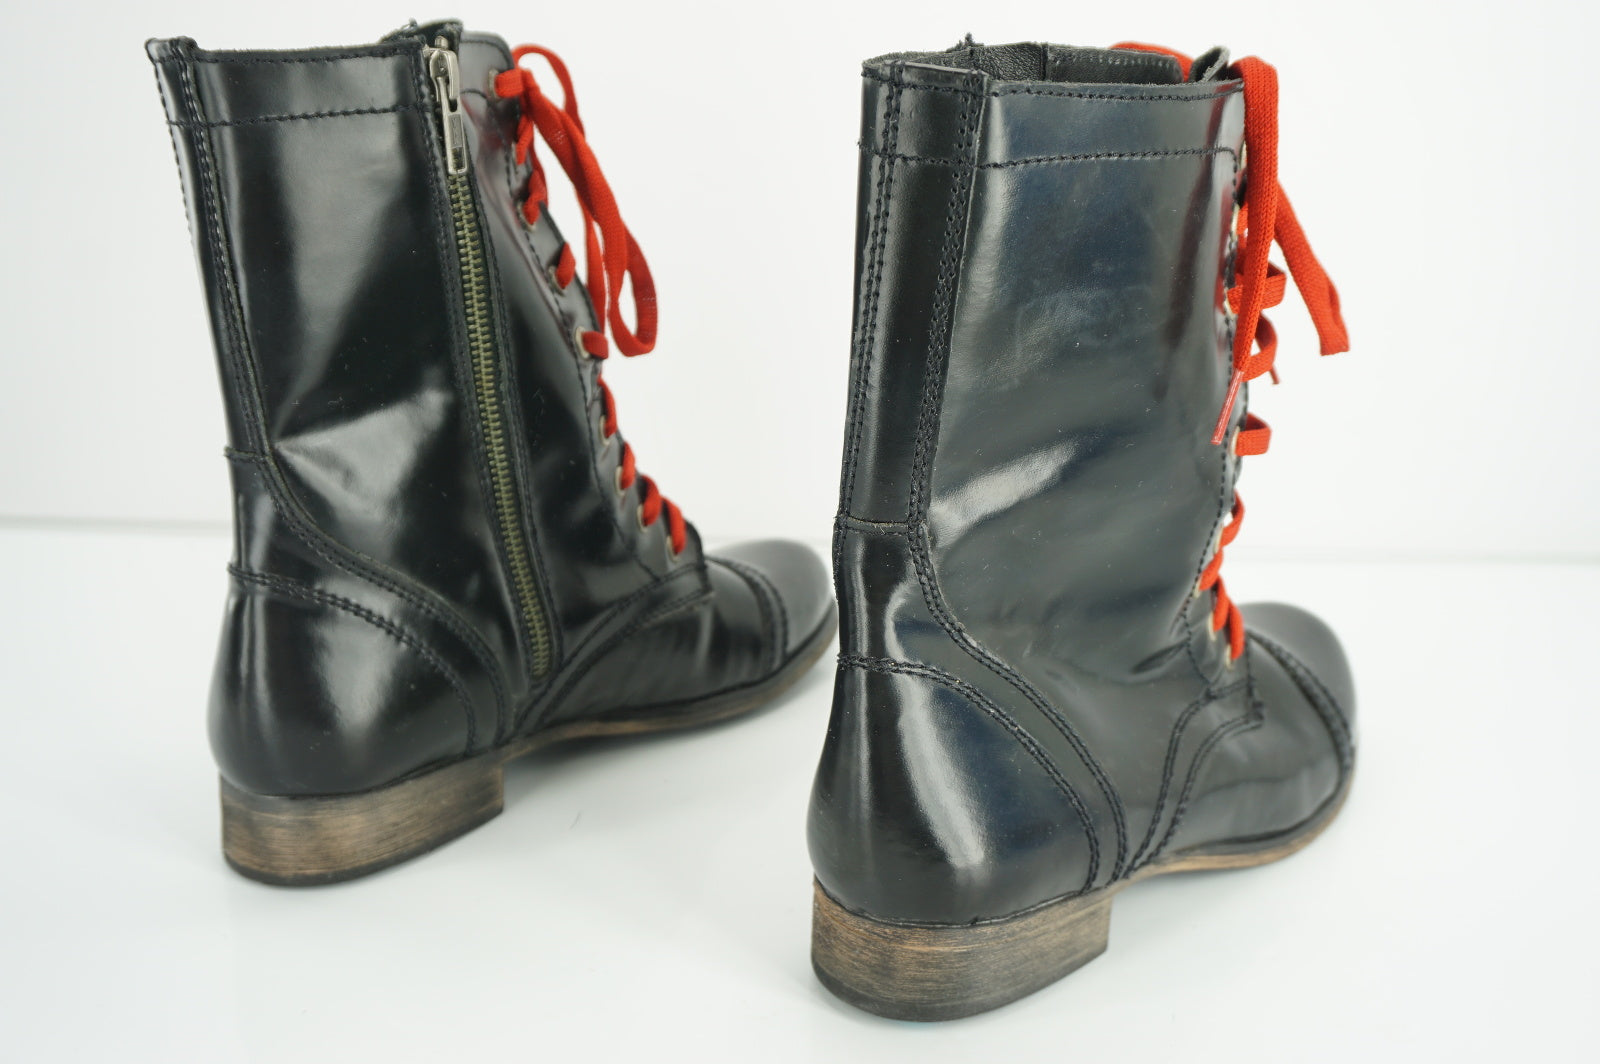 Steve Madden Troopale Black Leather Ankle Boots SZ 7.5 Military $130 Combat